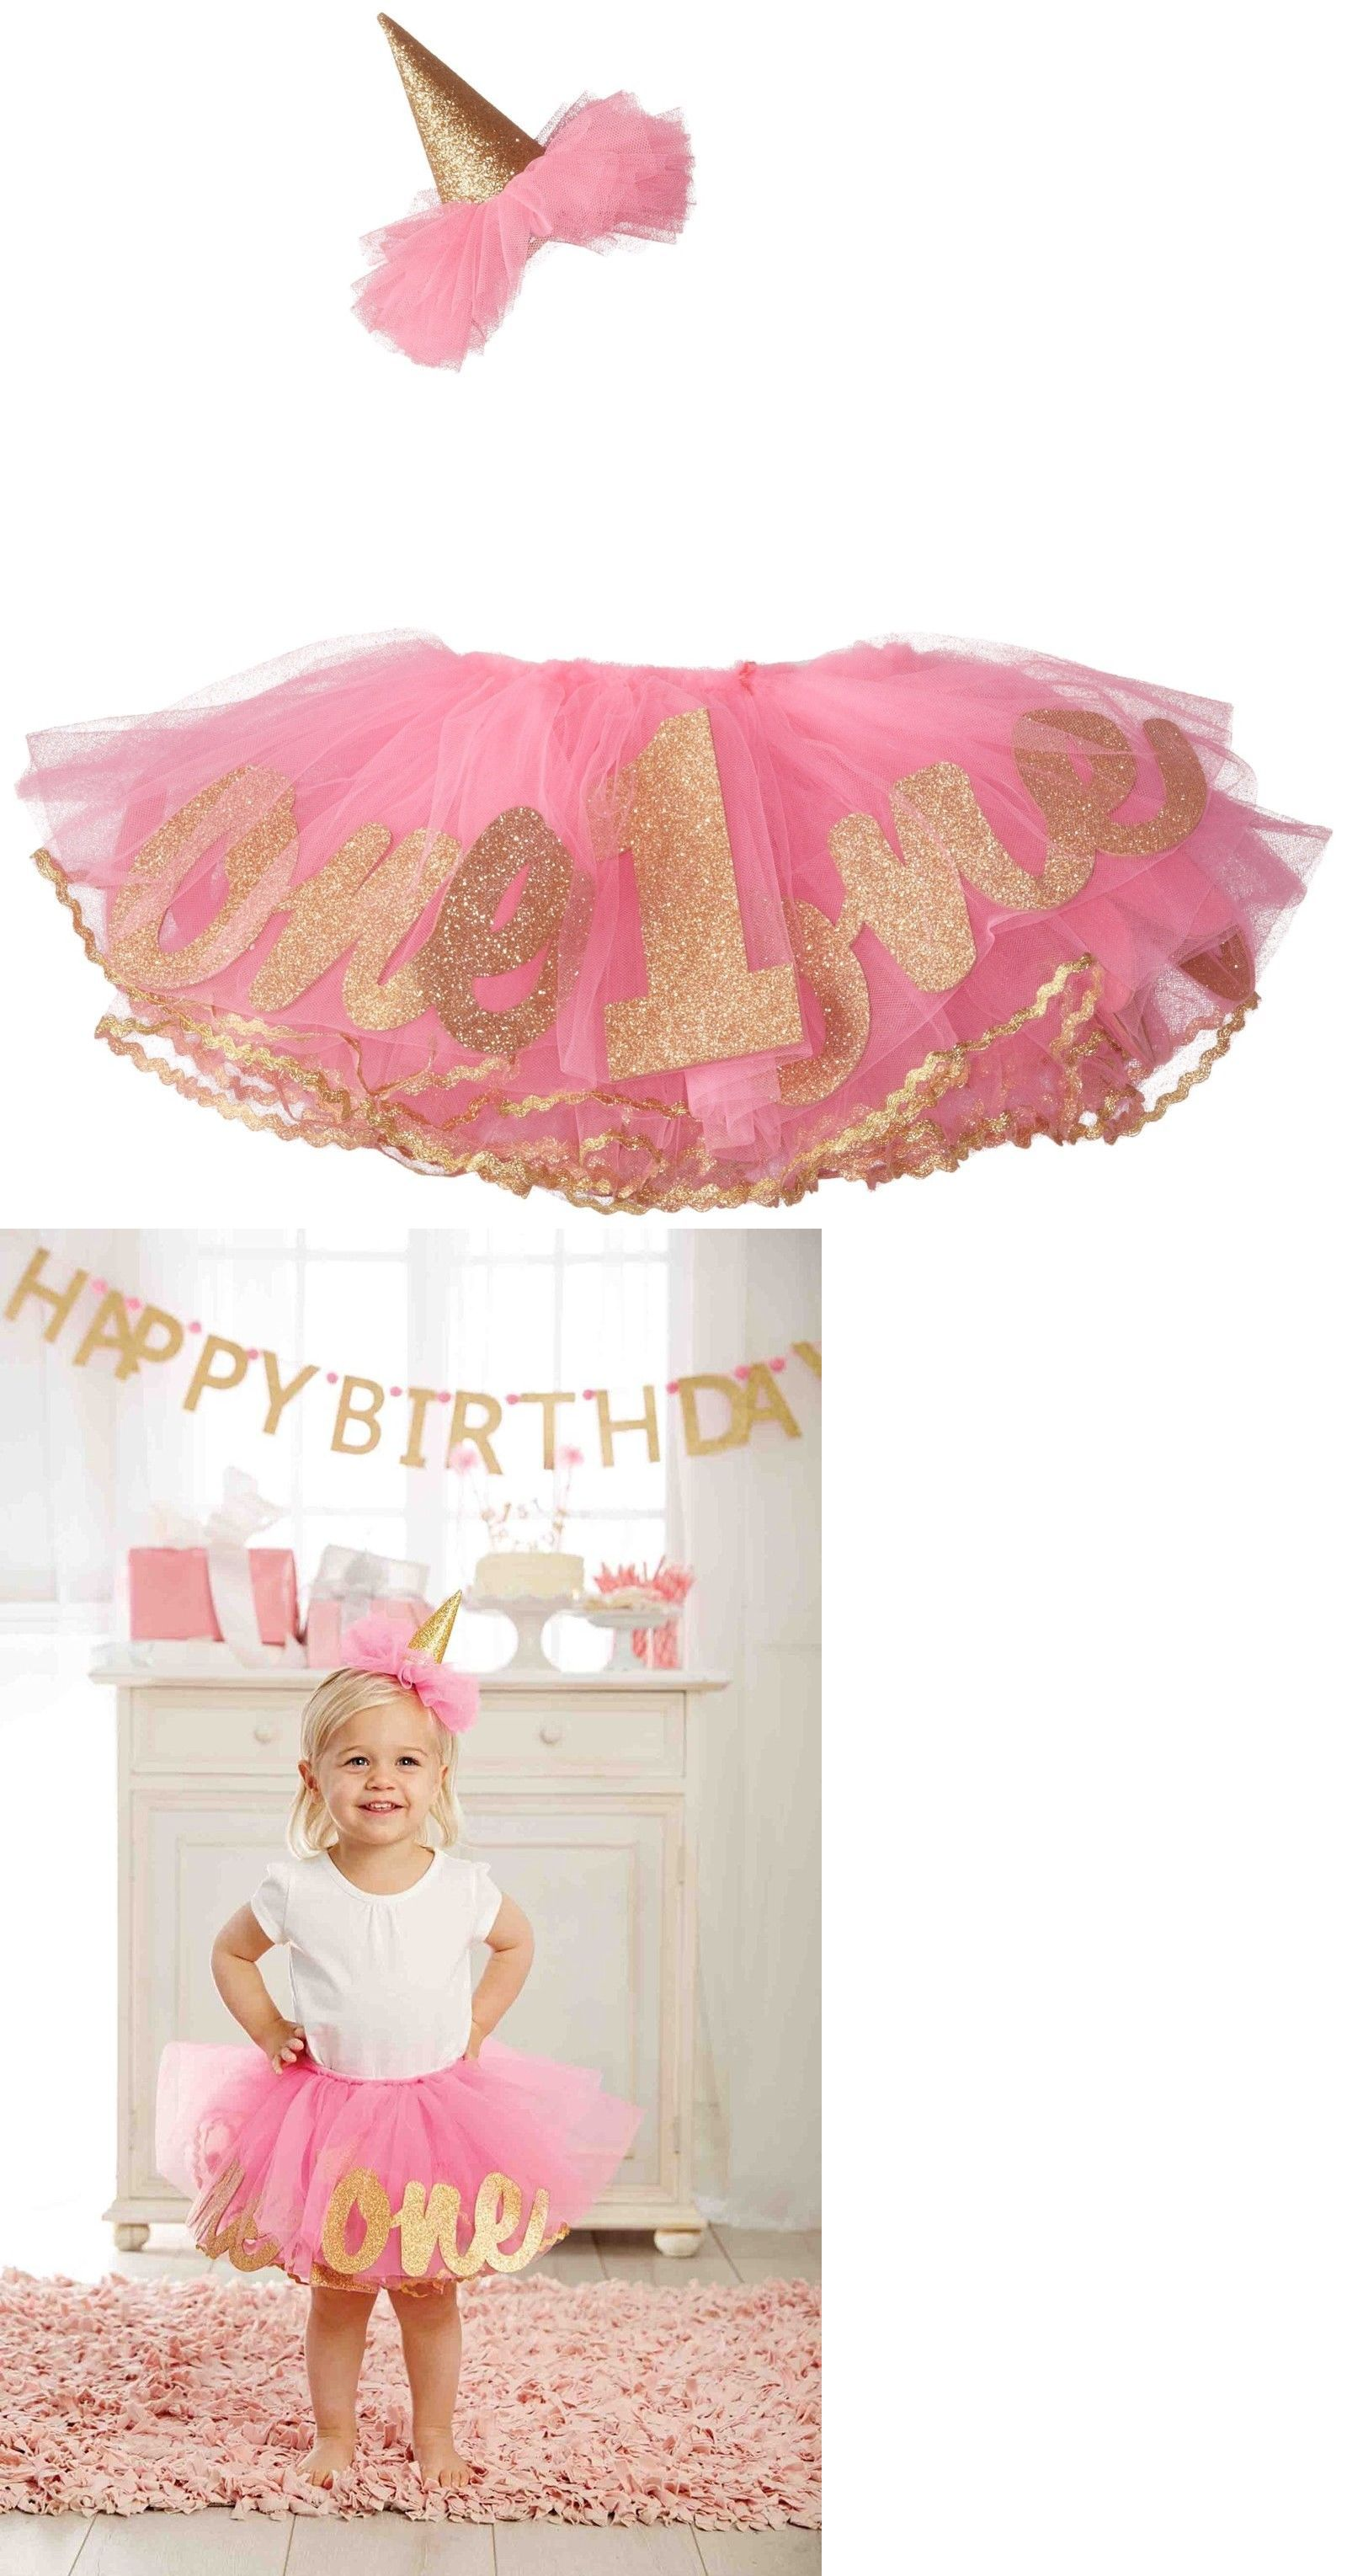 Outfits And Sets 147211 Mud Pie Baby Girl S Birthday Tutu One Party Hat